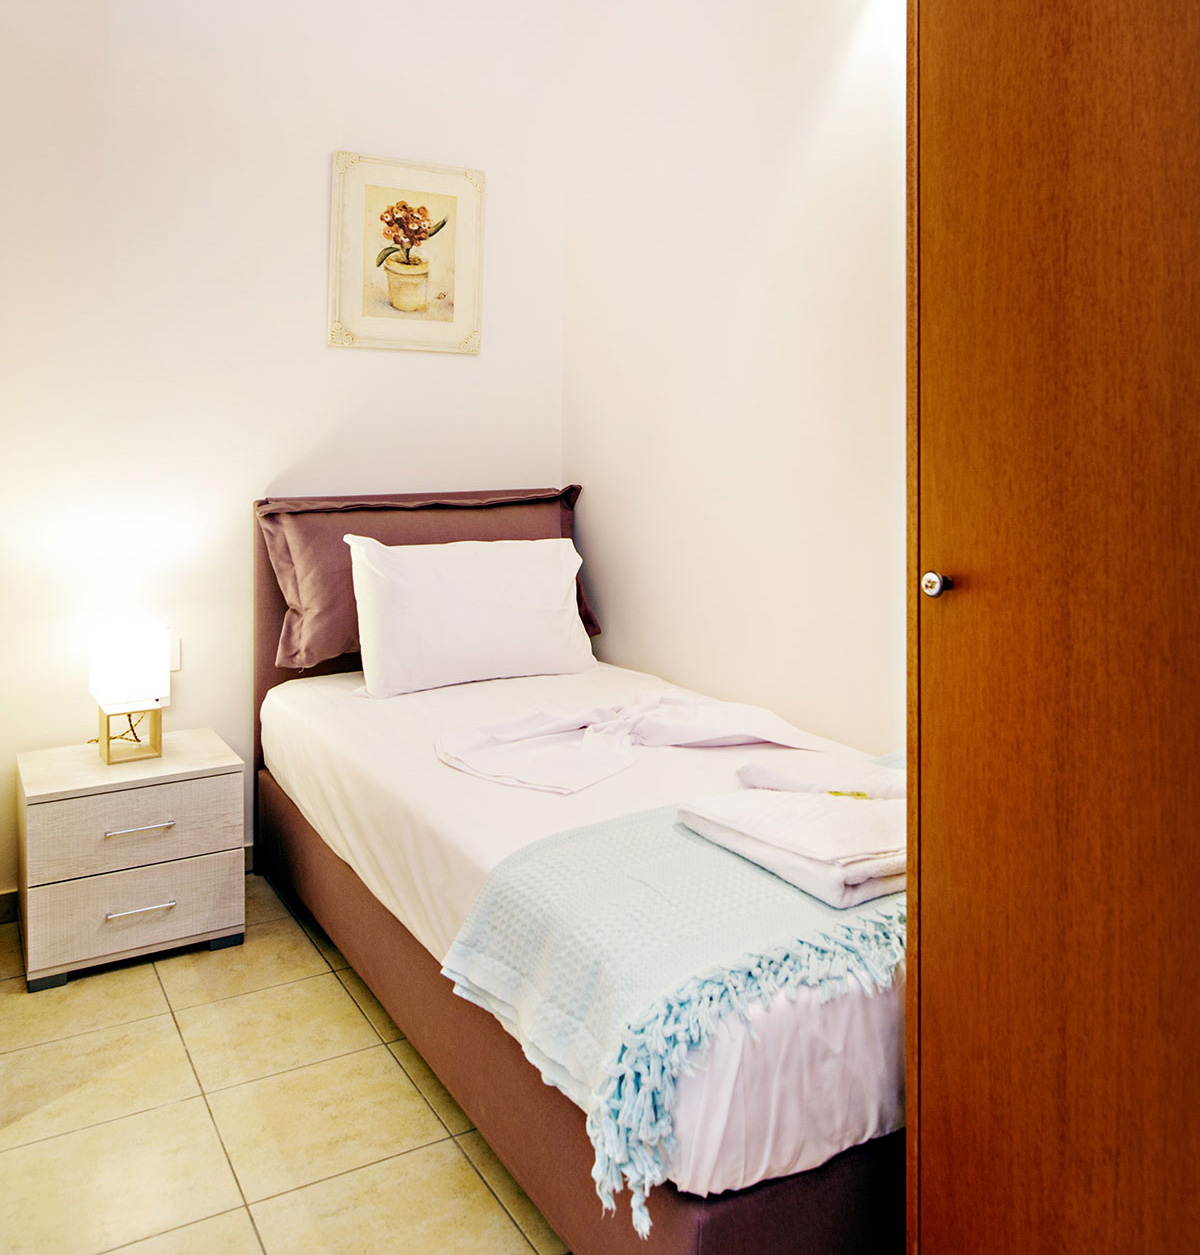 Odyssey Studios and Odyssey House Chania - Hermes Studio bedroom